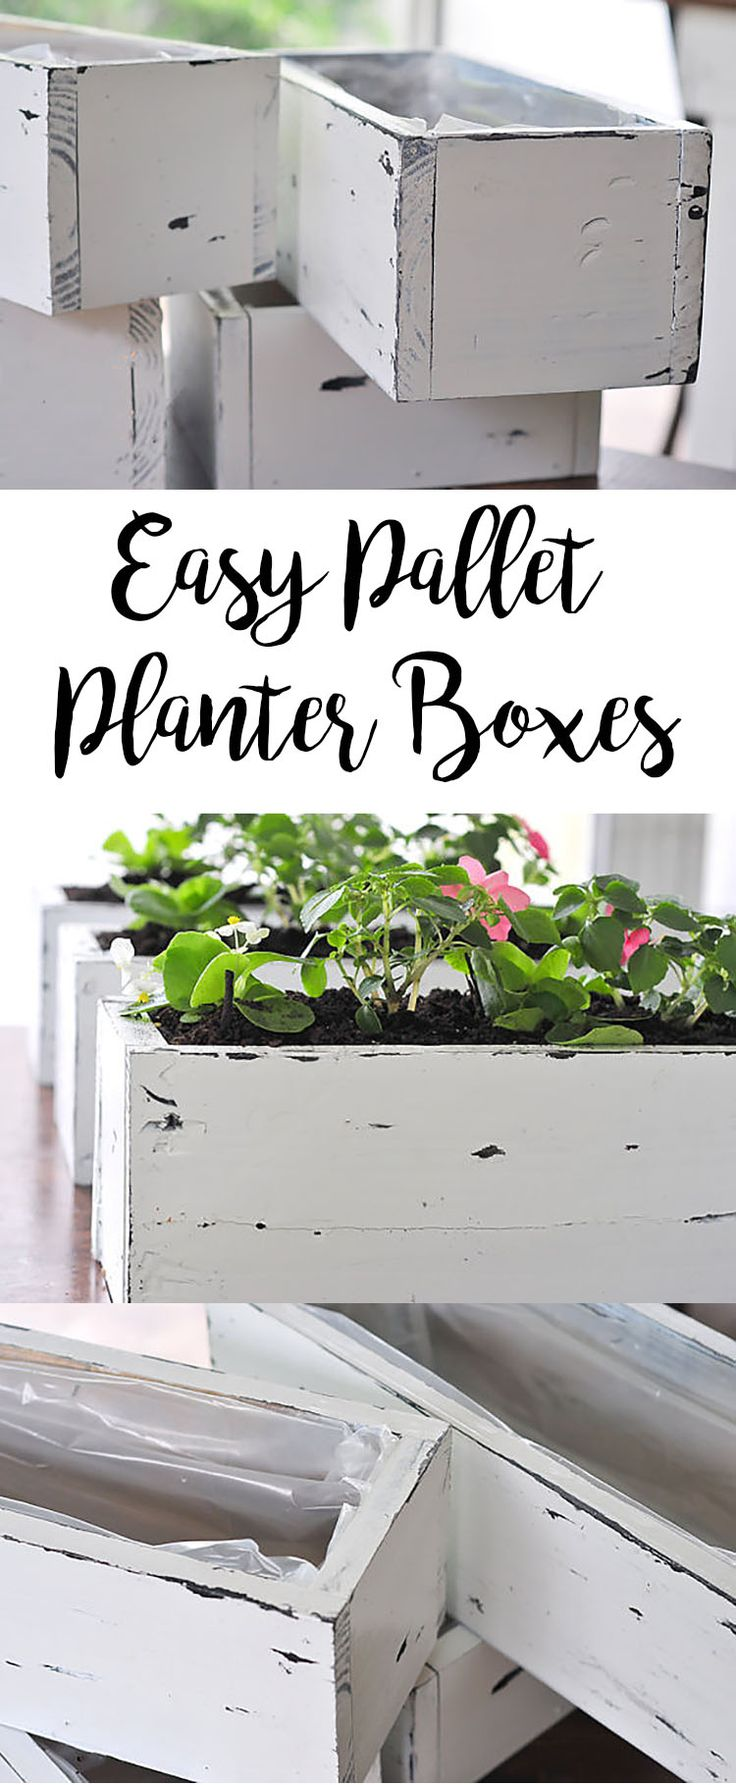 Diy herb garden made of pallets refresh your eyes and mind with pallet - Best 25 Pallet Planters Ideas On Pinterest Herb Garden Pallet Palette Garden And Pallet Garden Furniture